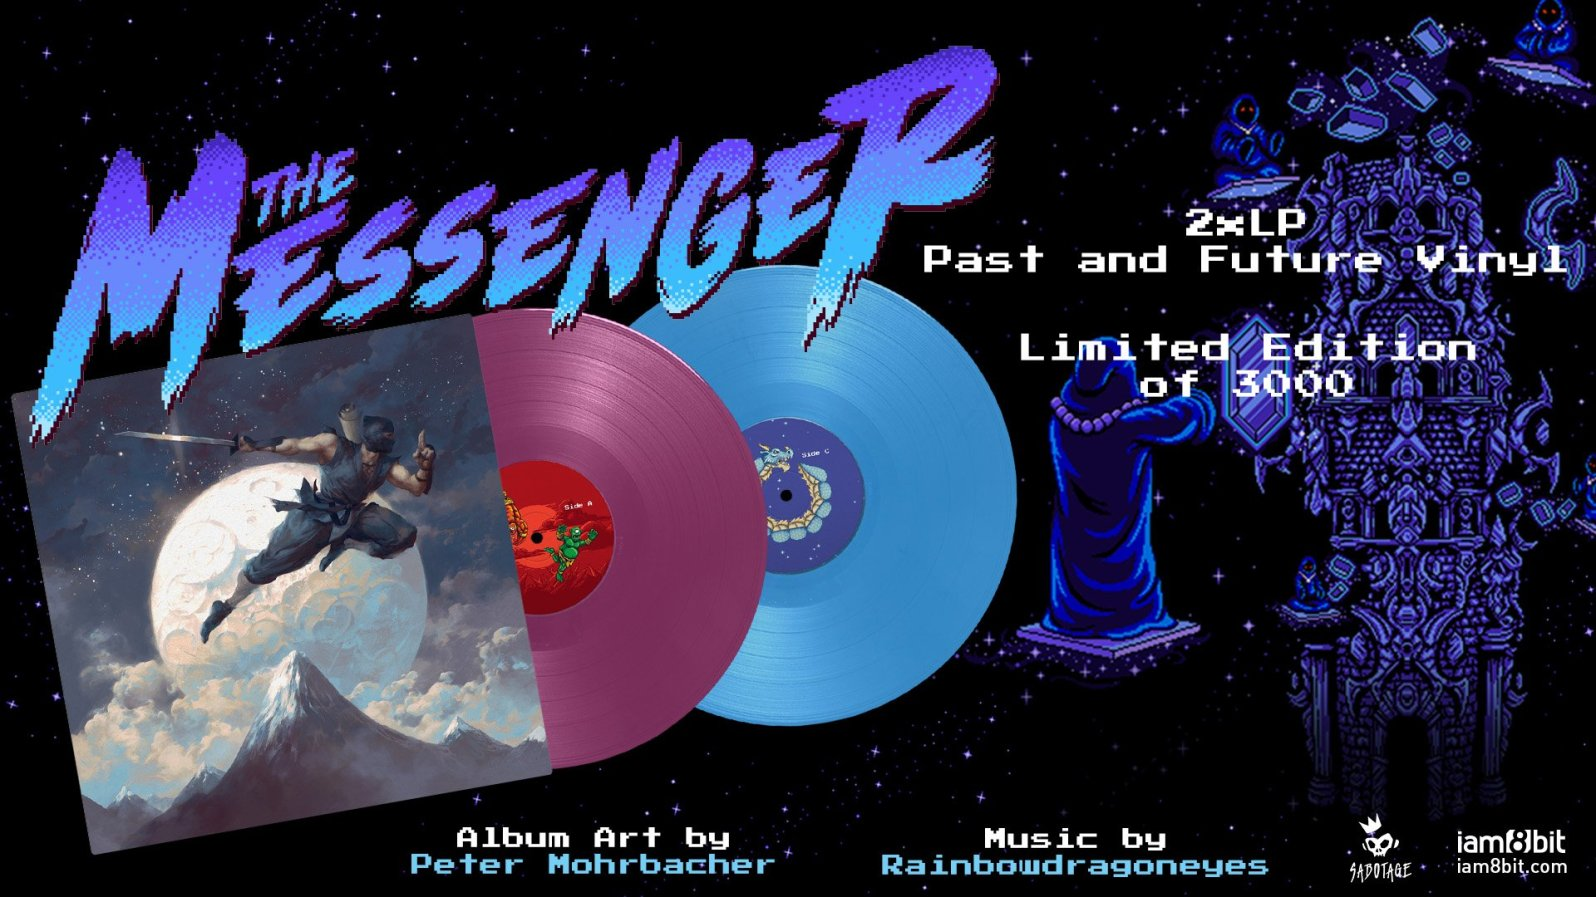 Quelle: store.iam8bit.com - The Messenger